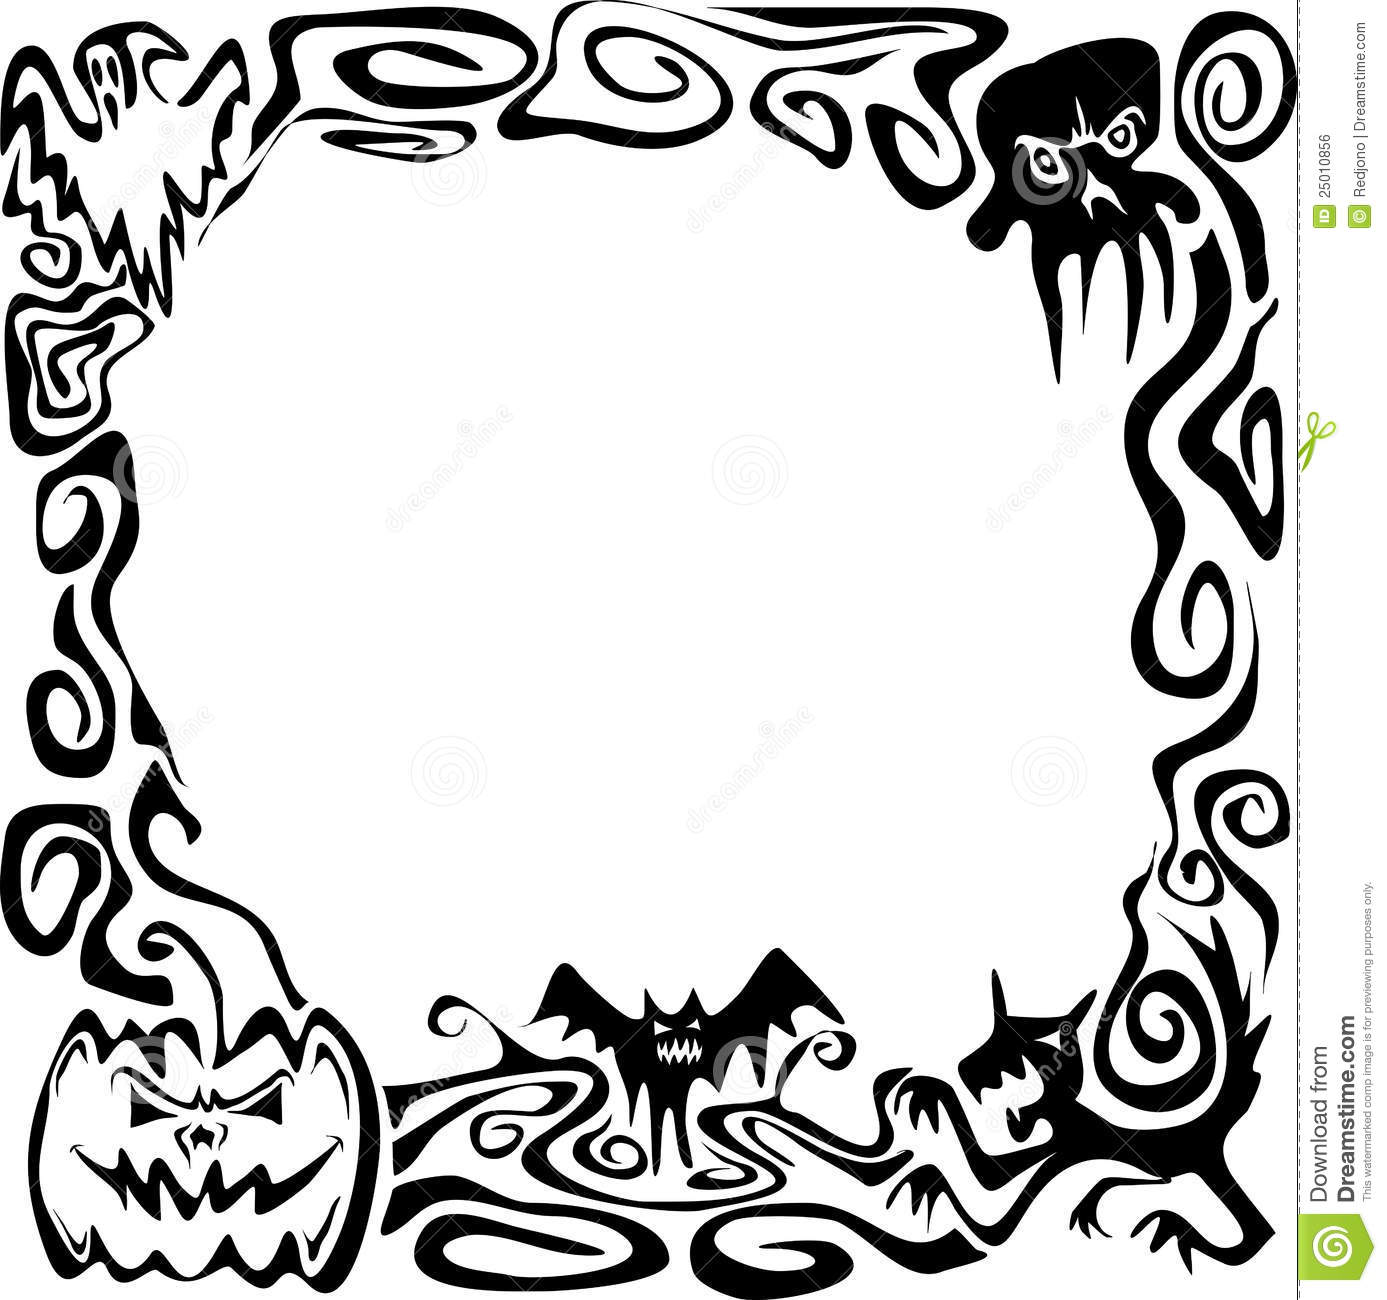 1387x1300 Halloween Border Cliparts